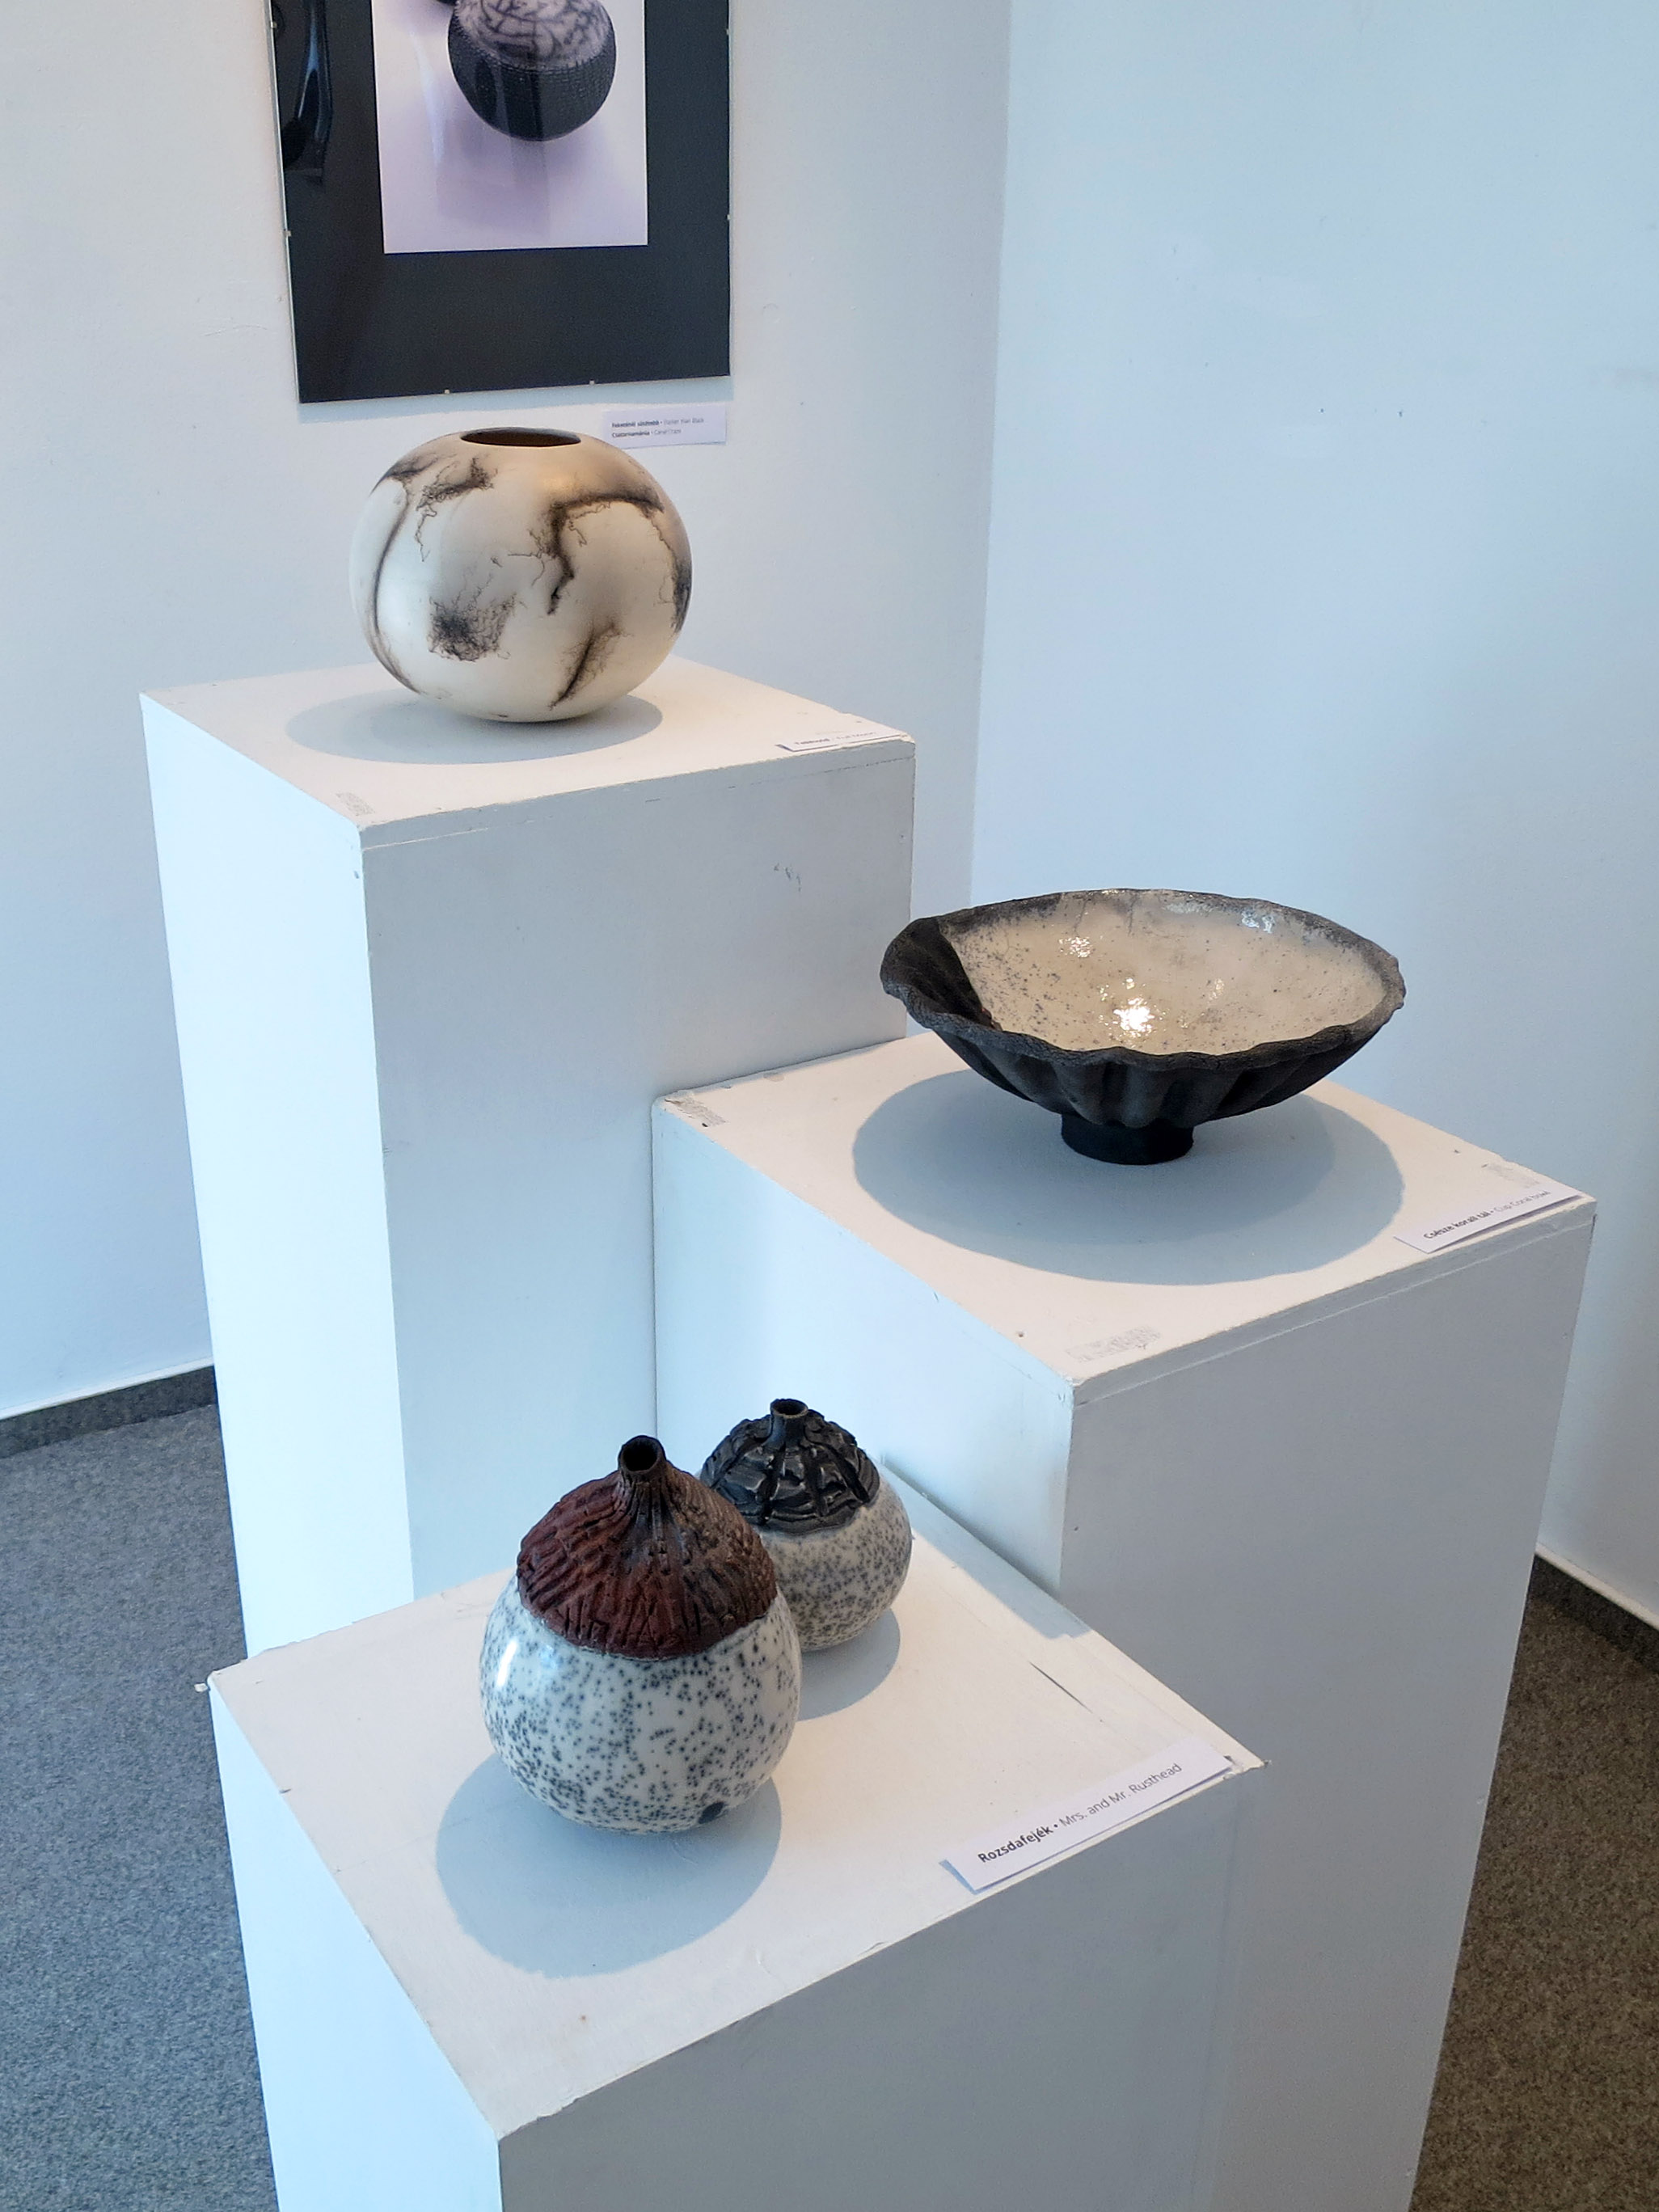 Not Just Whispering Globes - Tangible Universes: Solo Exhibition with Whispering Globes